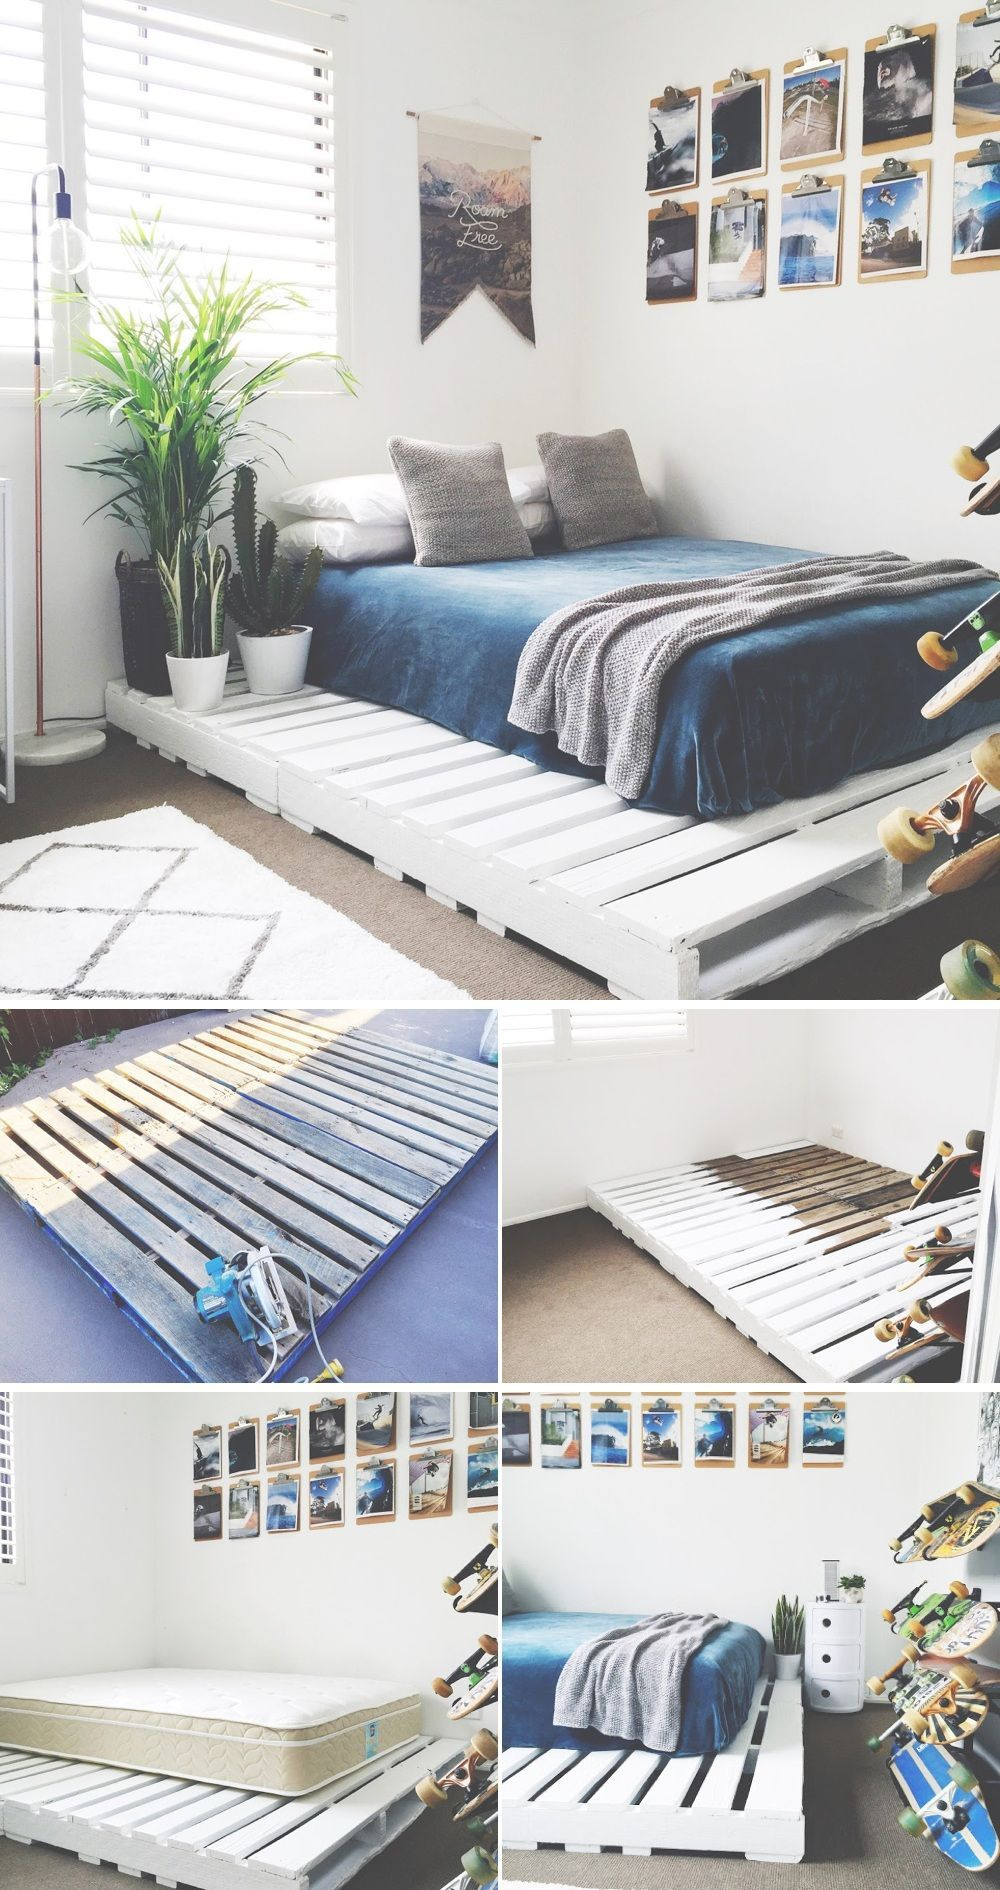 Base de cama reciclada | Decoración de interiores | Pinterest ...